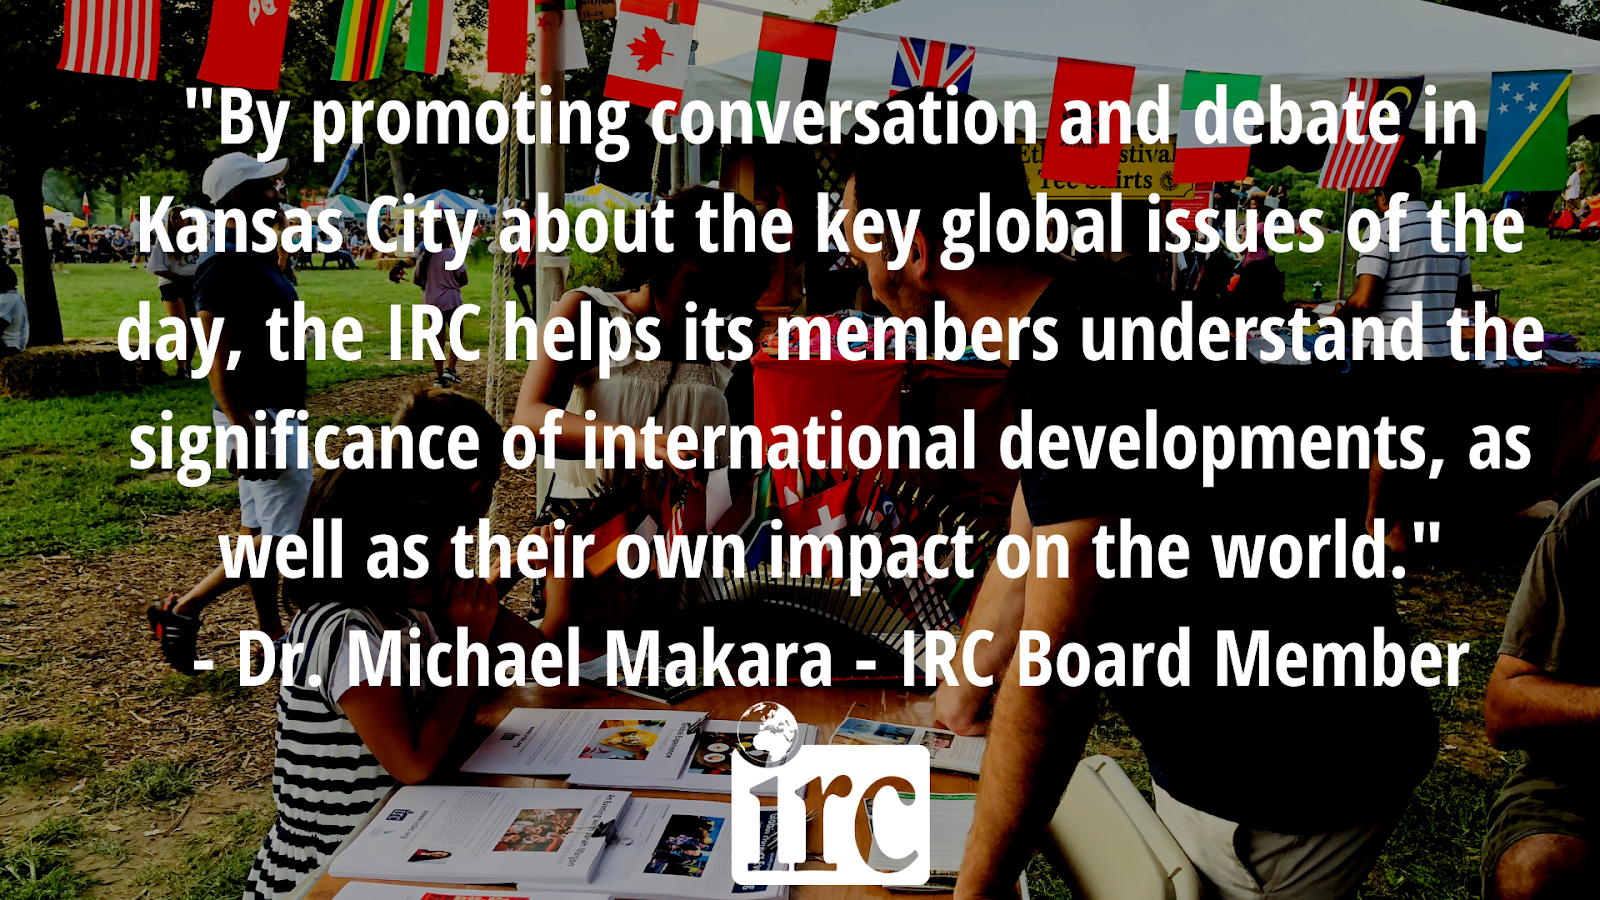 By promoting conversation and debate in Kansas City about the key global issues of the day, the IRC helps its members understand the significance of international developments, as well as their own impact on the world. Dr. Michael Makara - IRC board member - click here to donate